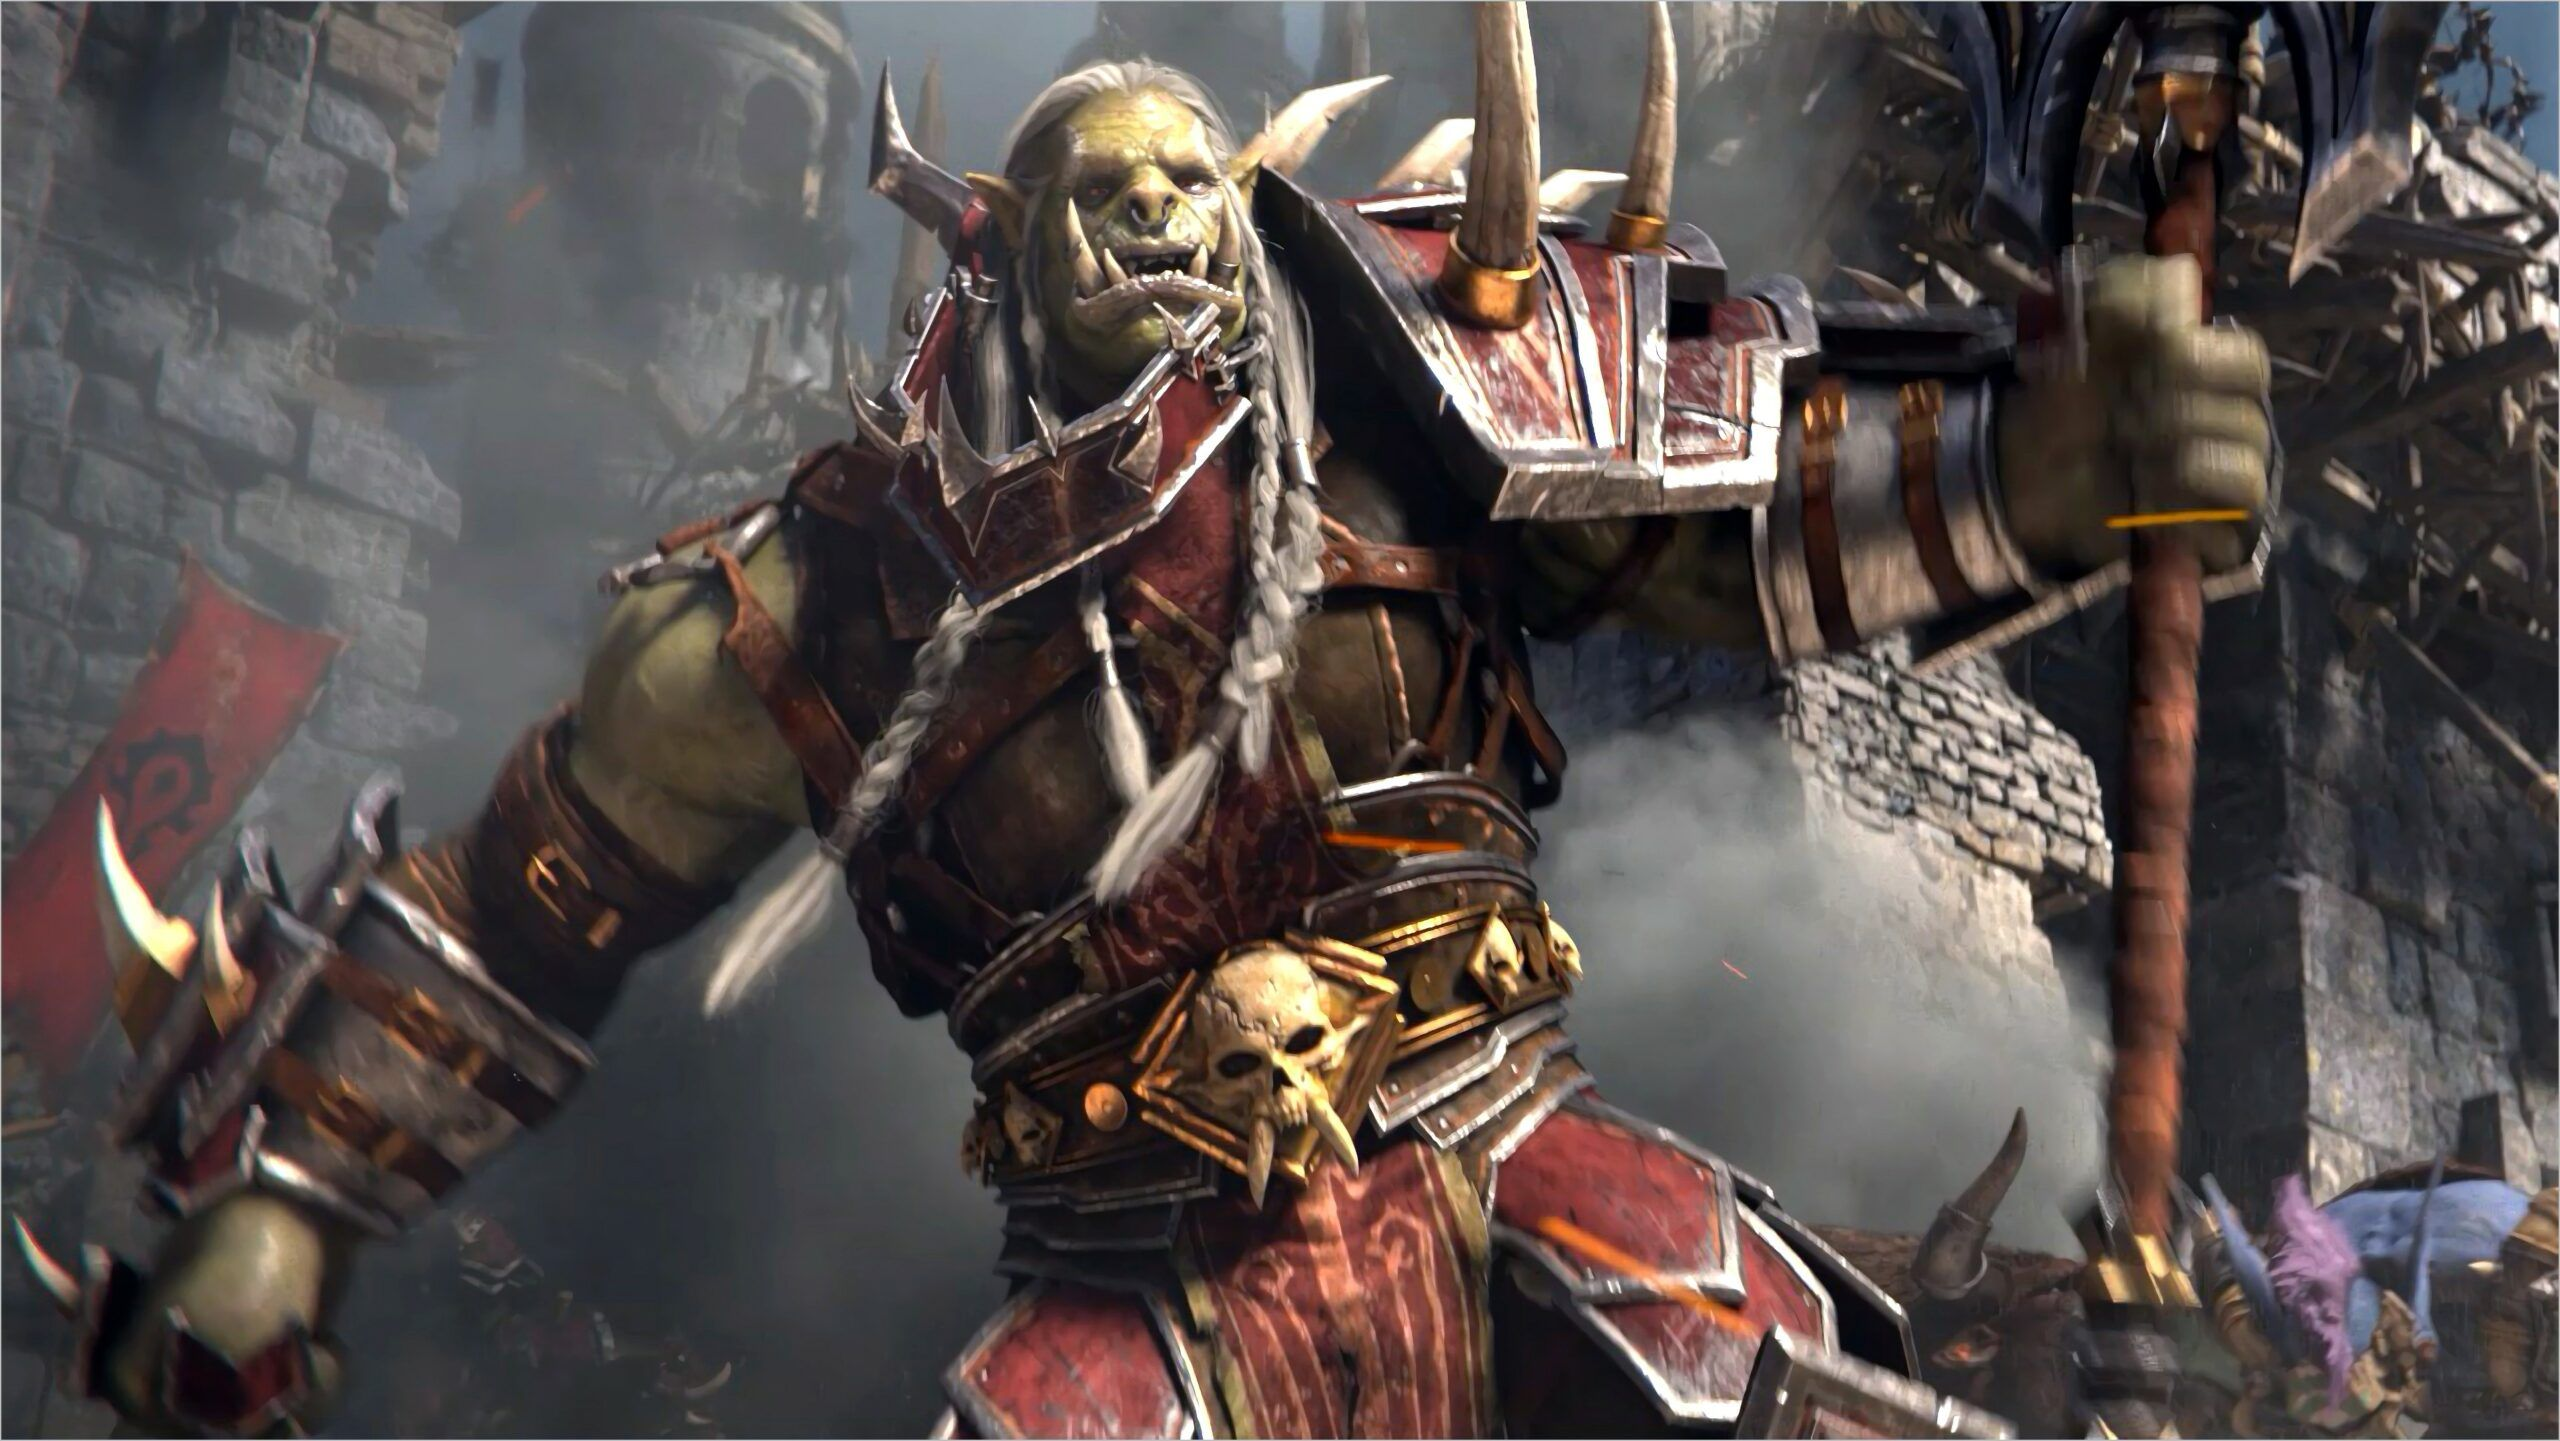 Varok Saurfang Wallpaper 4k In 2020 Art Artwork Art Blog